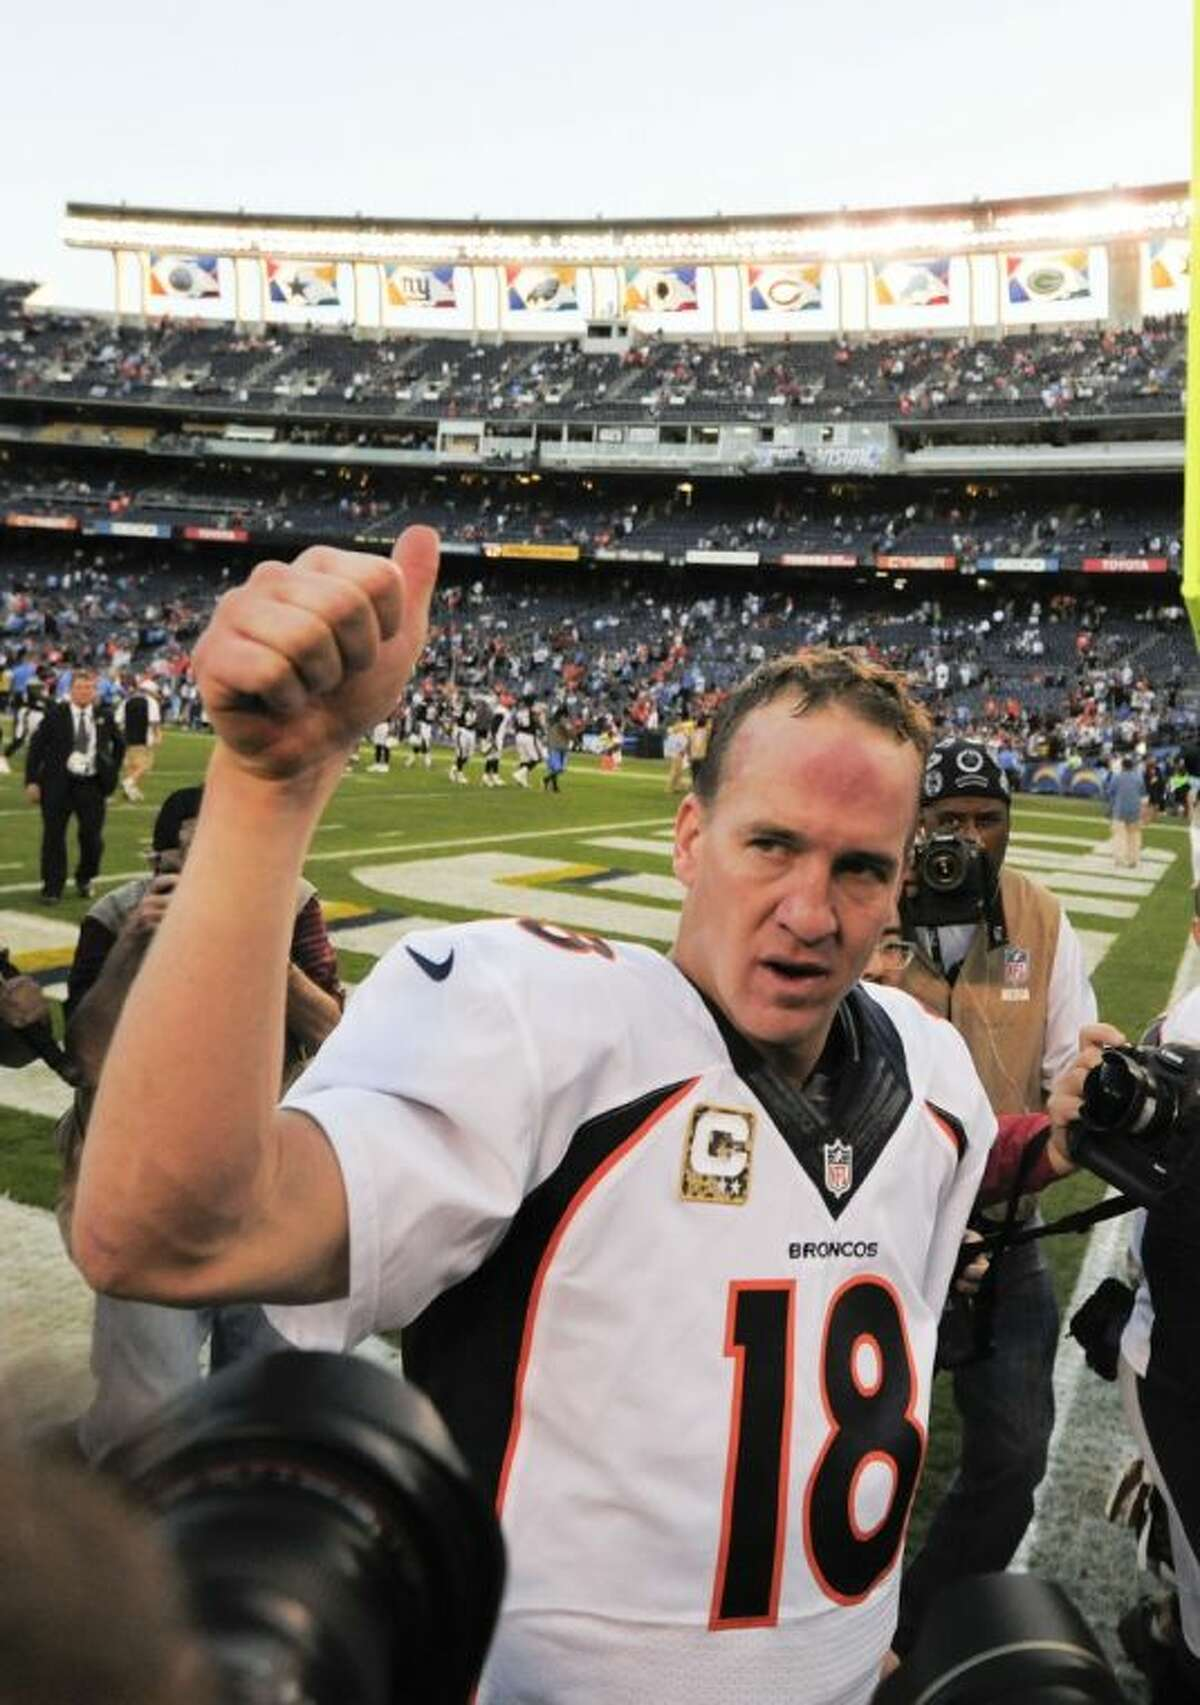 Denver Broncos quarterback Peyton Manning (18) pumps his fist after an NFL football game against the San Diego Chargers Sunday in San Diego. The Broncos won 28-20.